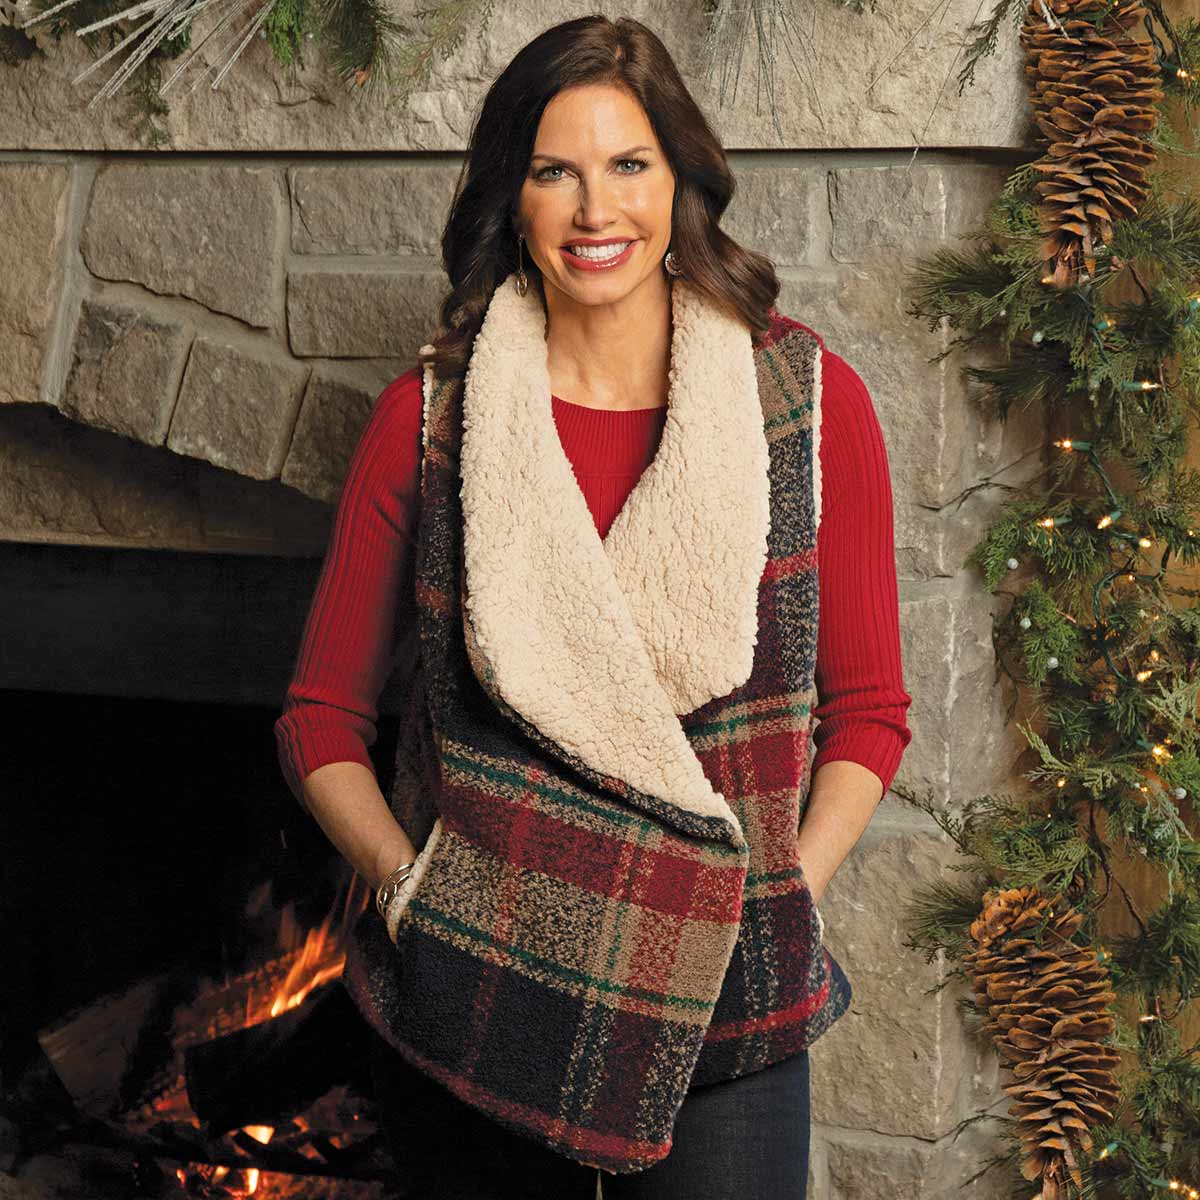 NAVY AND BURGUNDY BOUCLE PLAID FLEECE LINED VEST